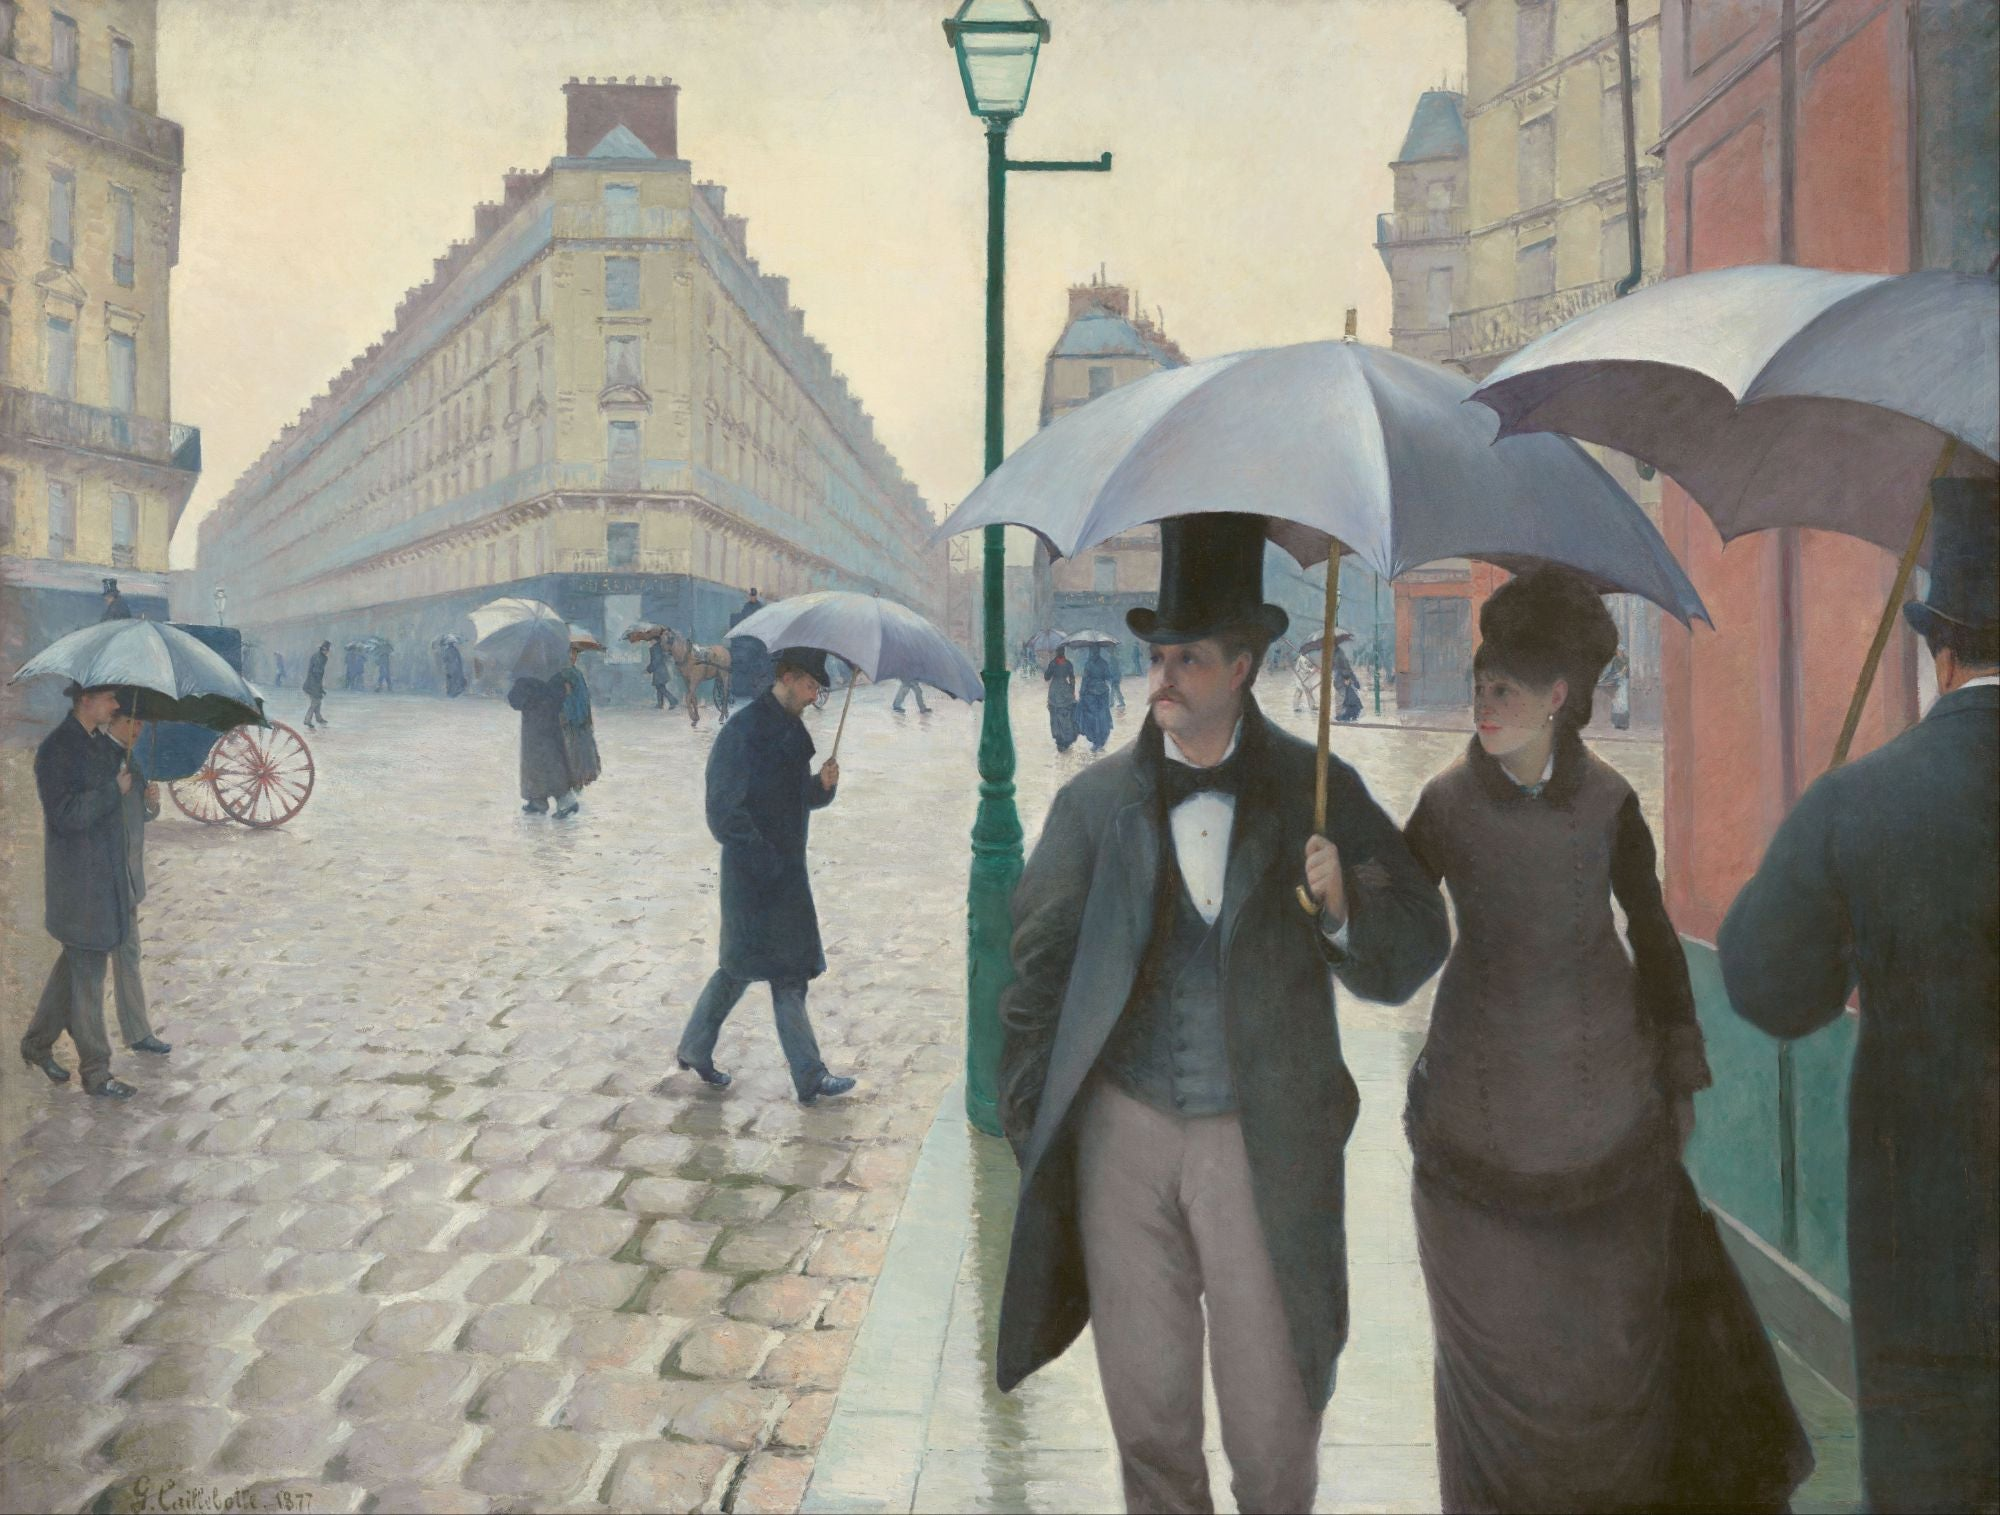 Gustave Caillebotte | Buy Posters, Frames, Canvas, Digital Art & Large Size Prints Of The Famous Old Master's Artworks